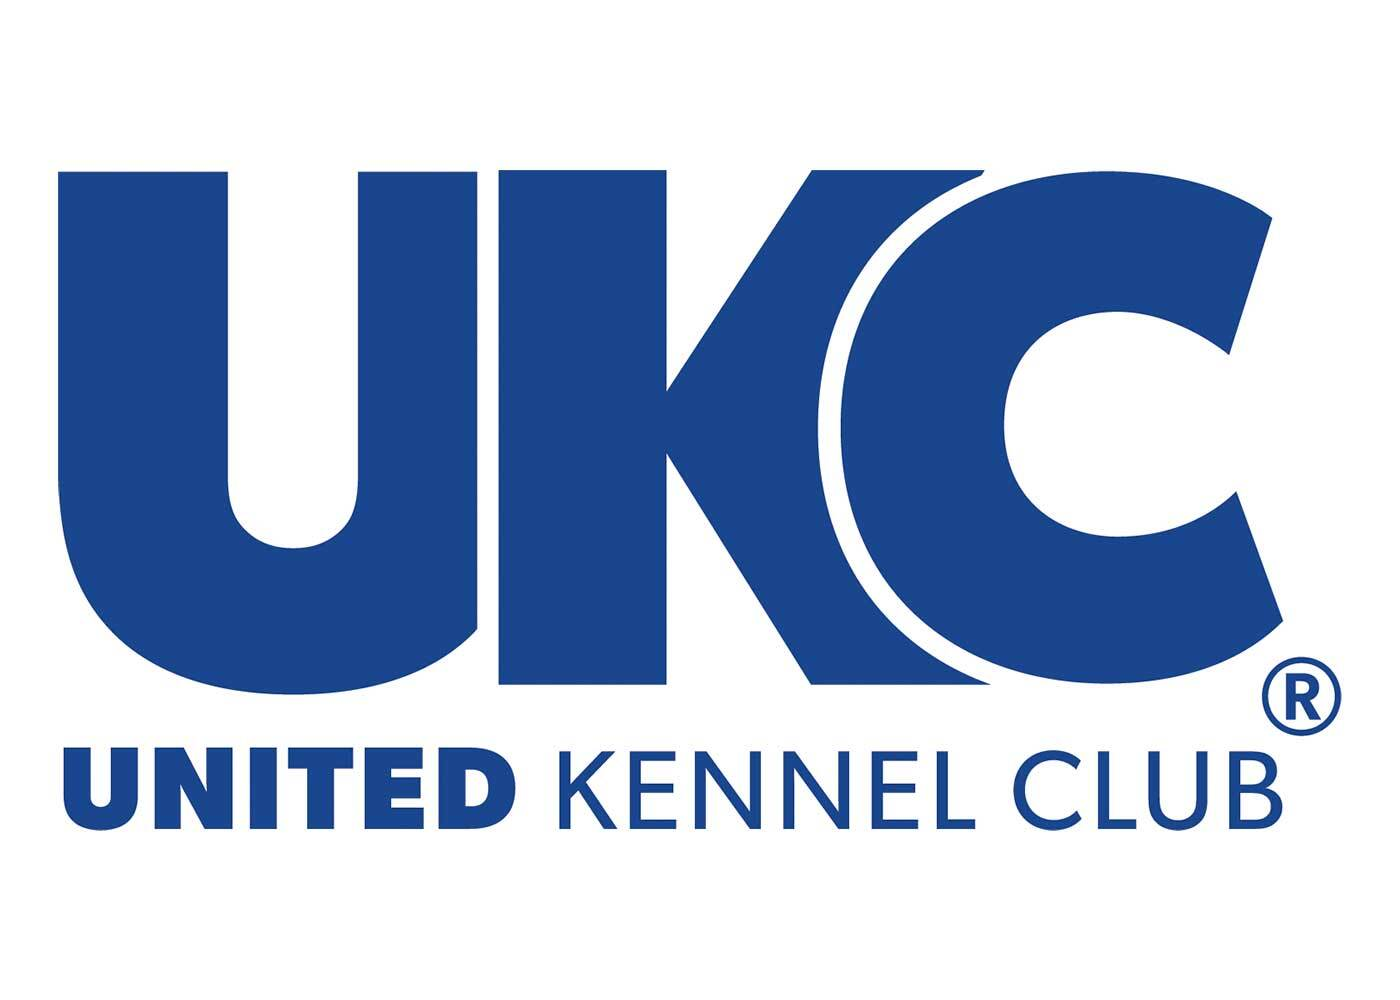 United Kennel Club (UKC)